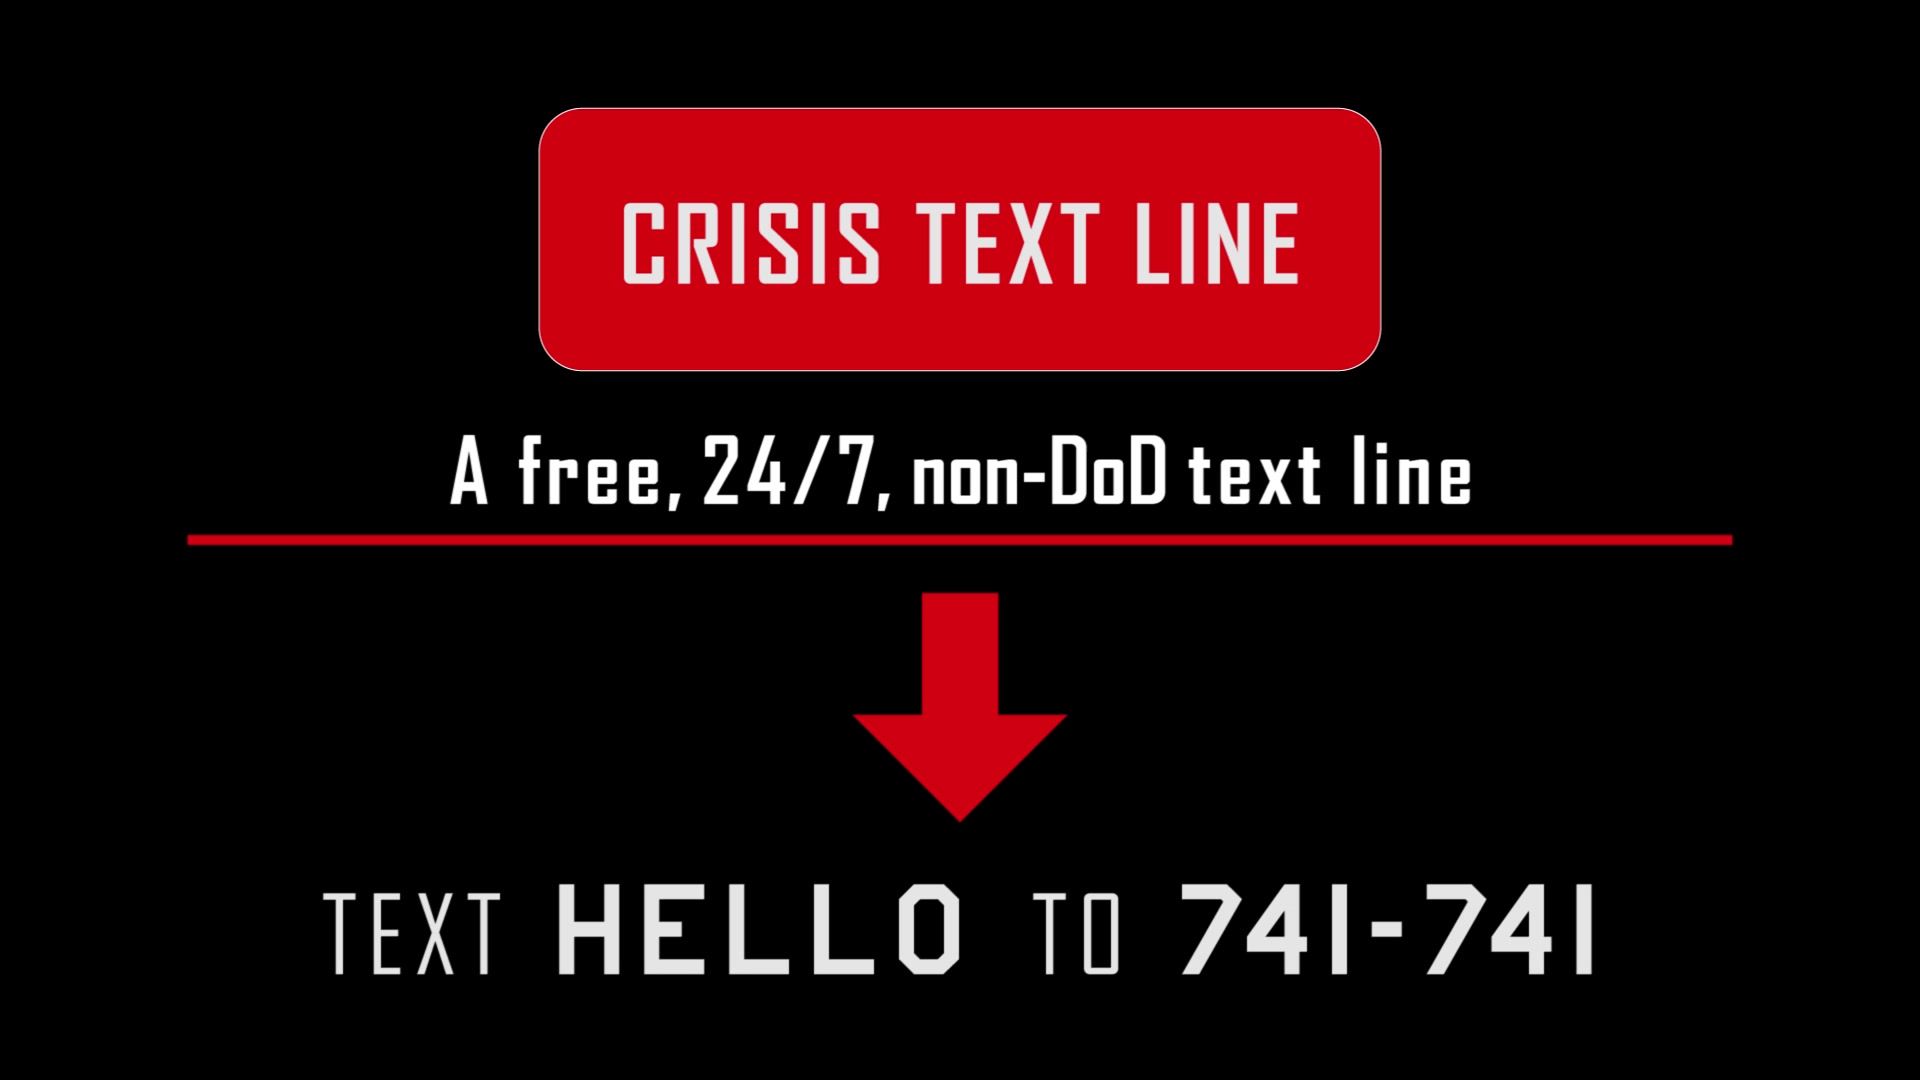 Video of a free, non-Department of Defense emergency text hotline.